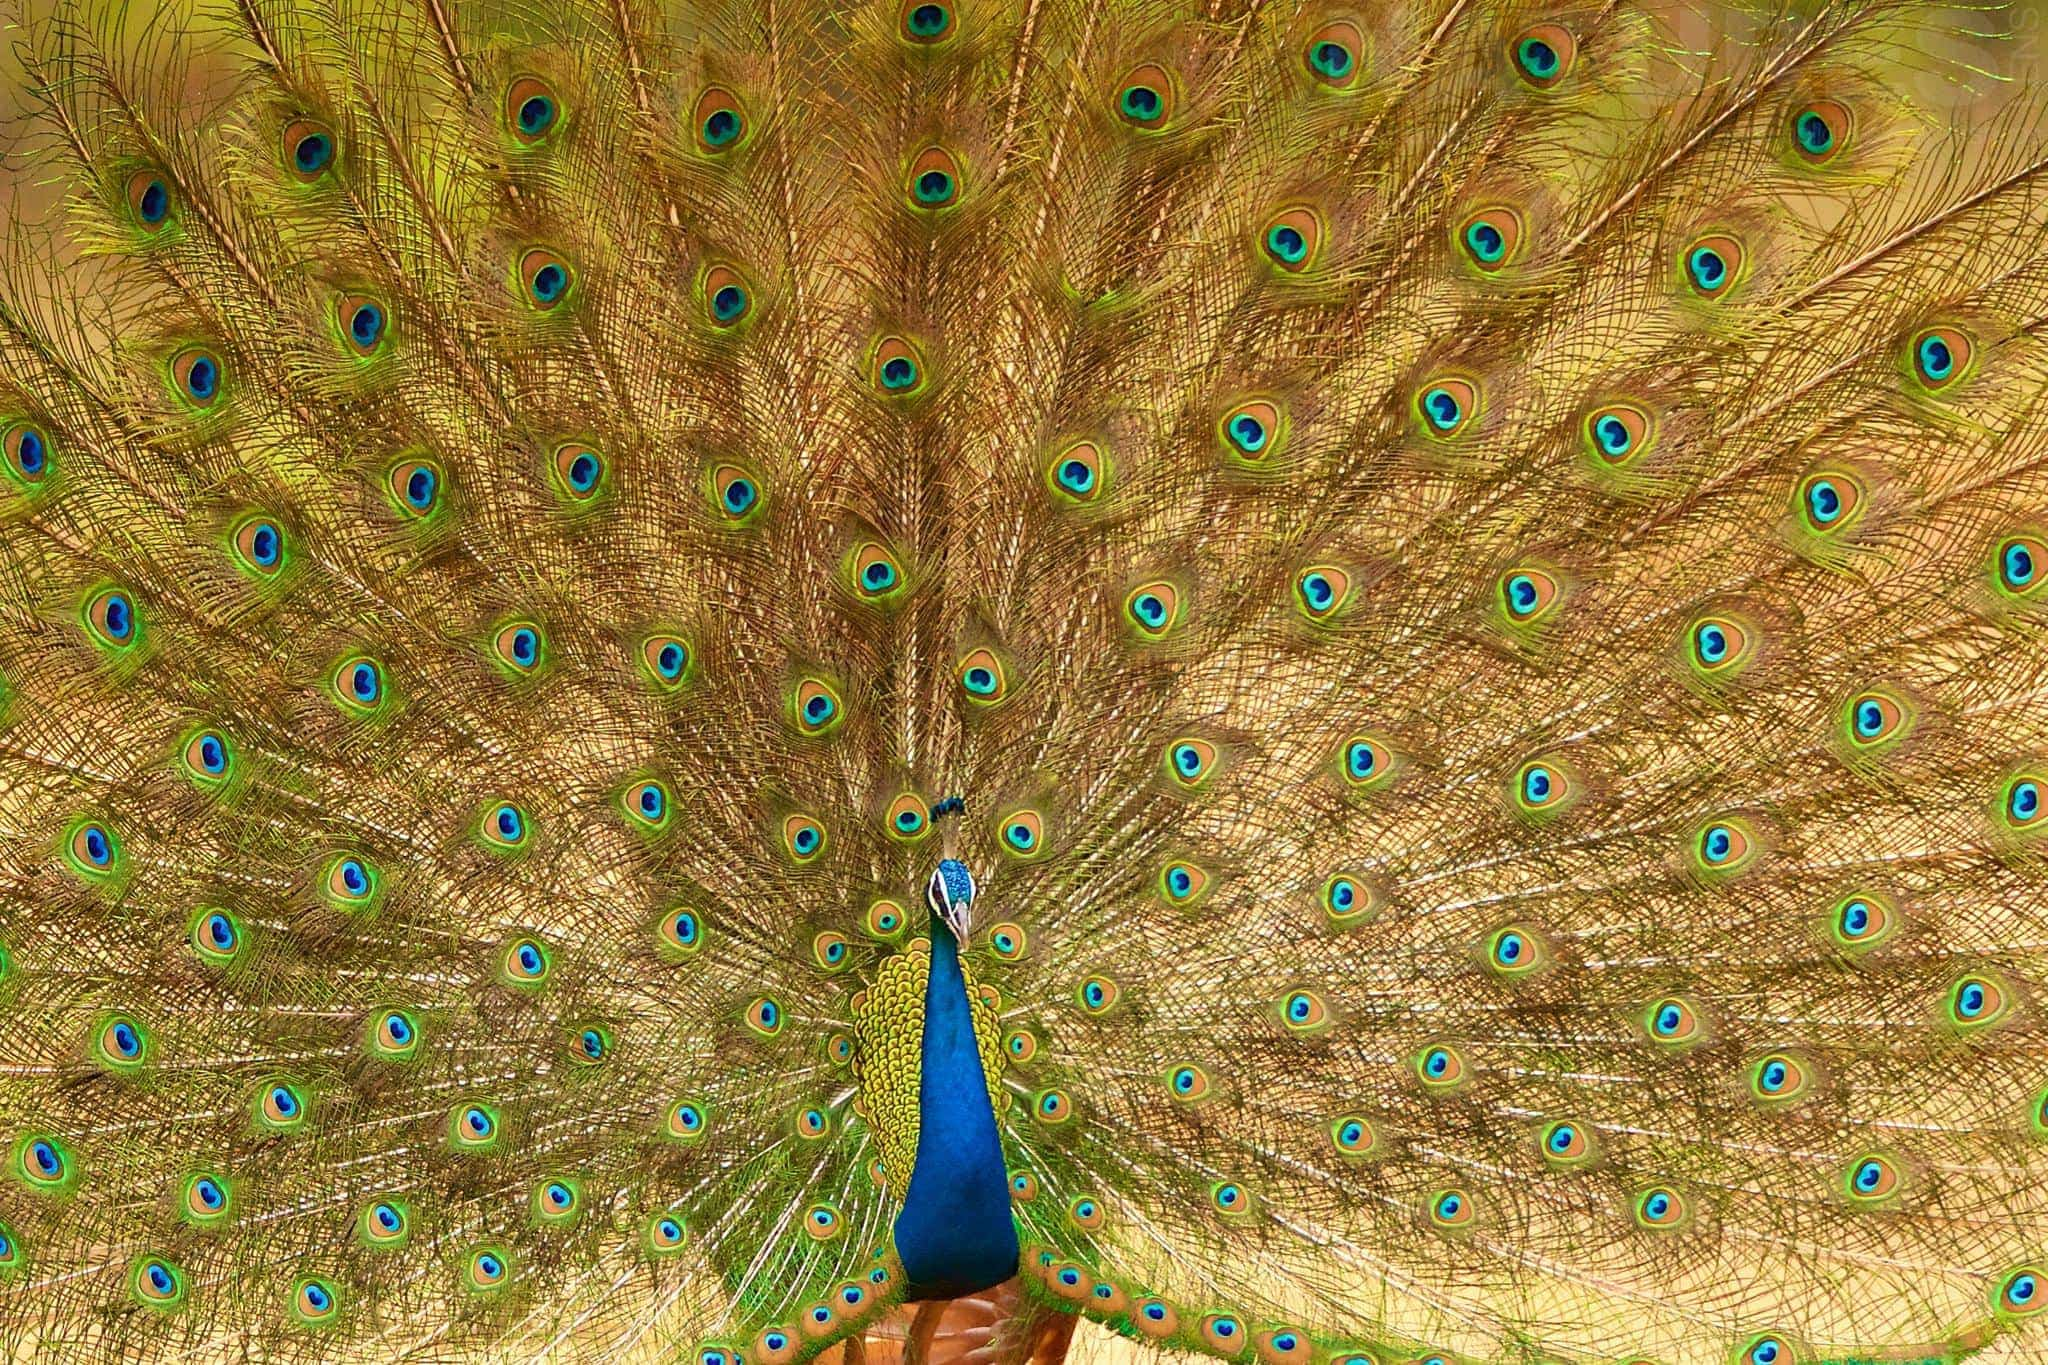 Peacock Displaying As Captured During The NaturesLens Tigers Of Bandhavgarh Photography Holiday